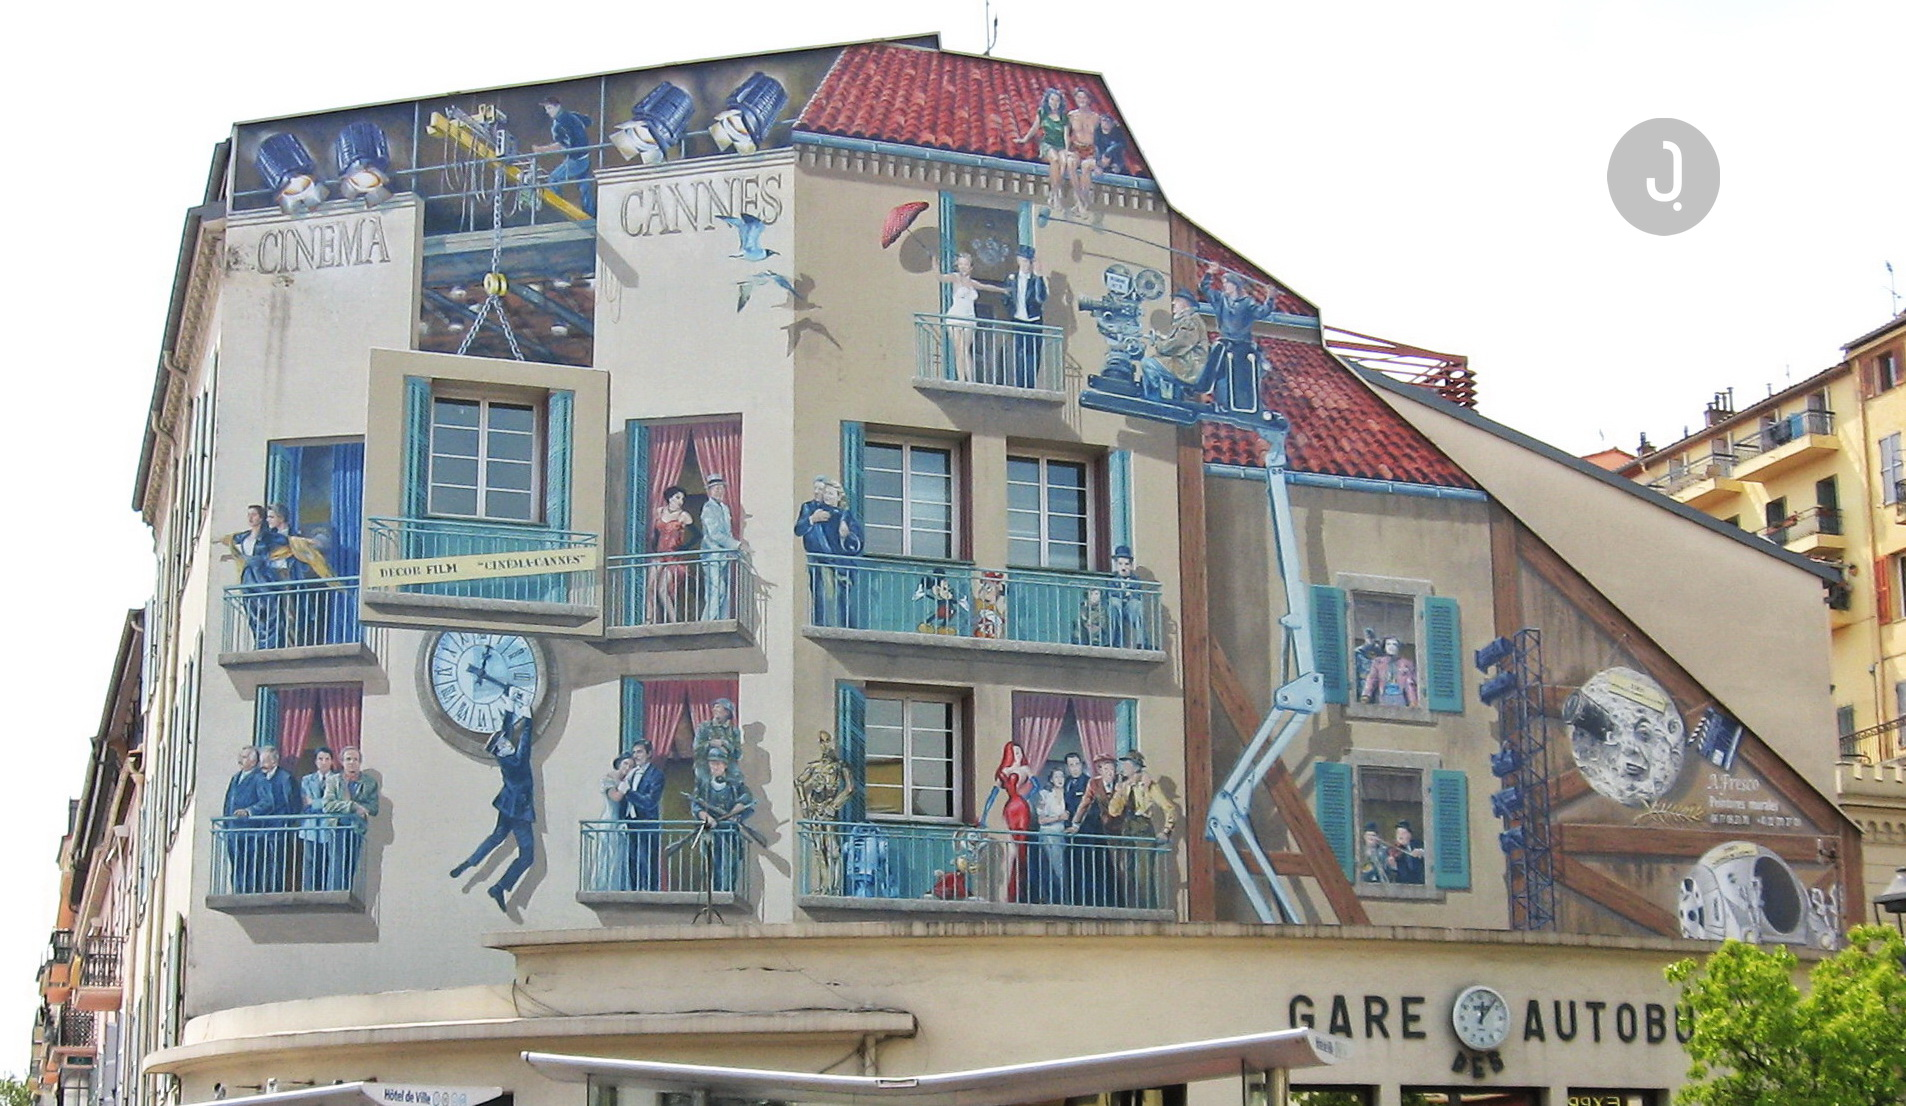 Cannes Film Murals